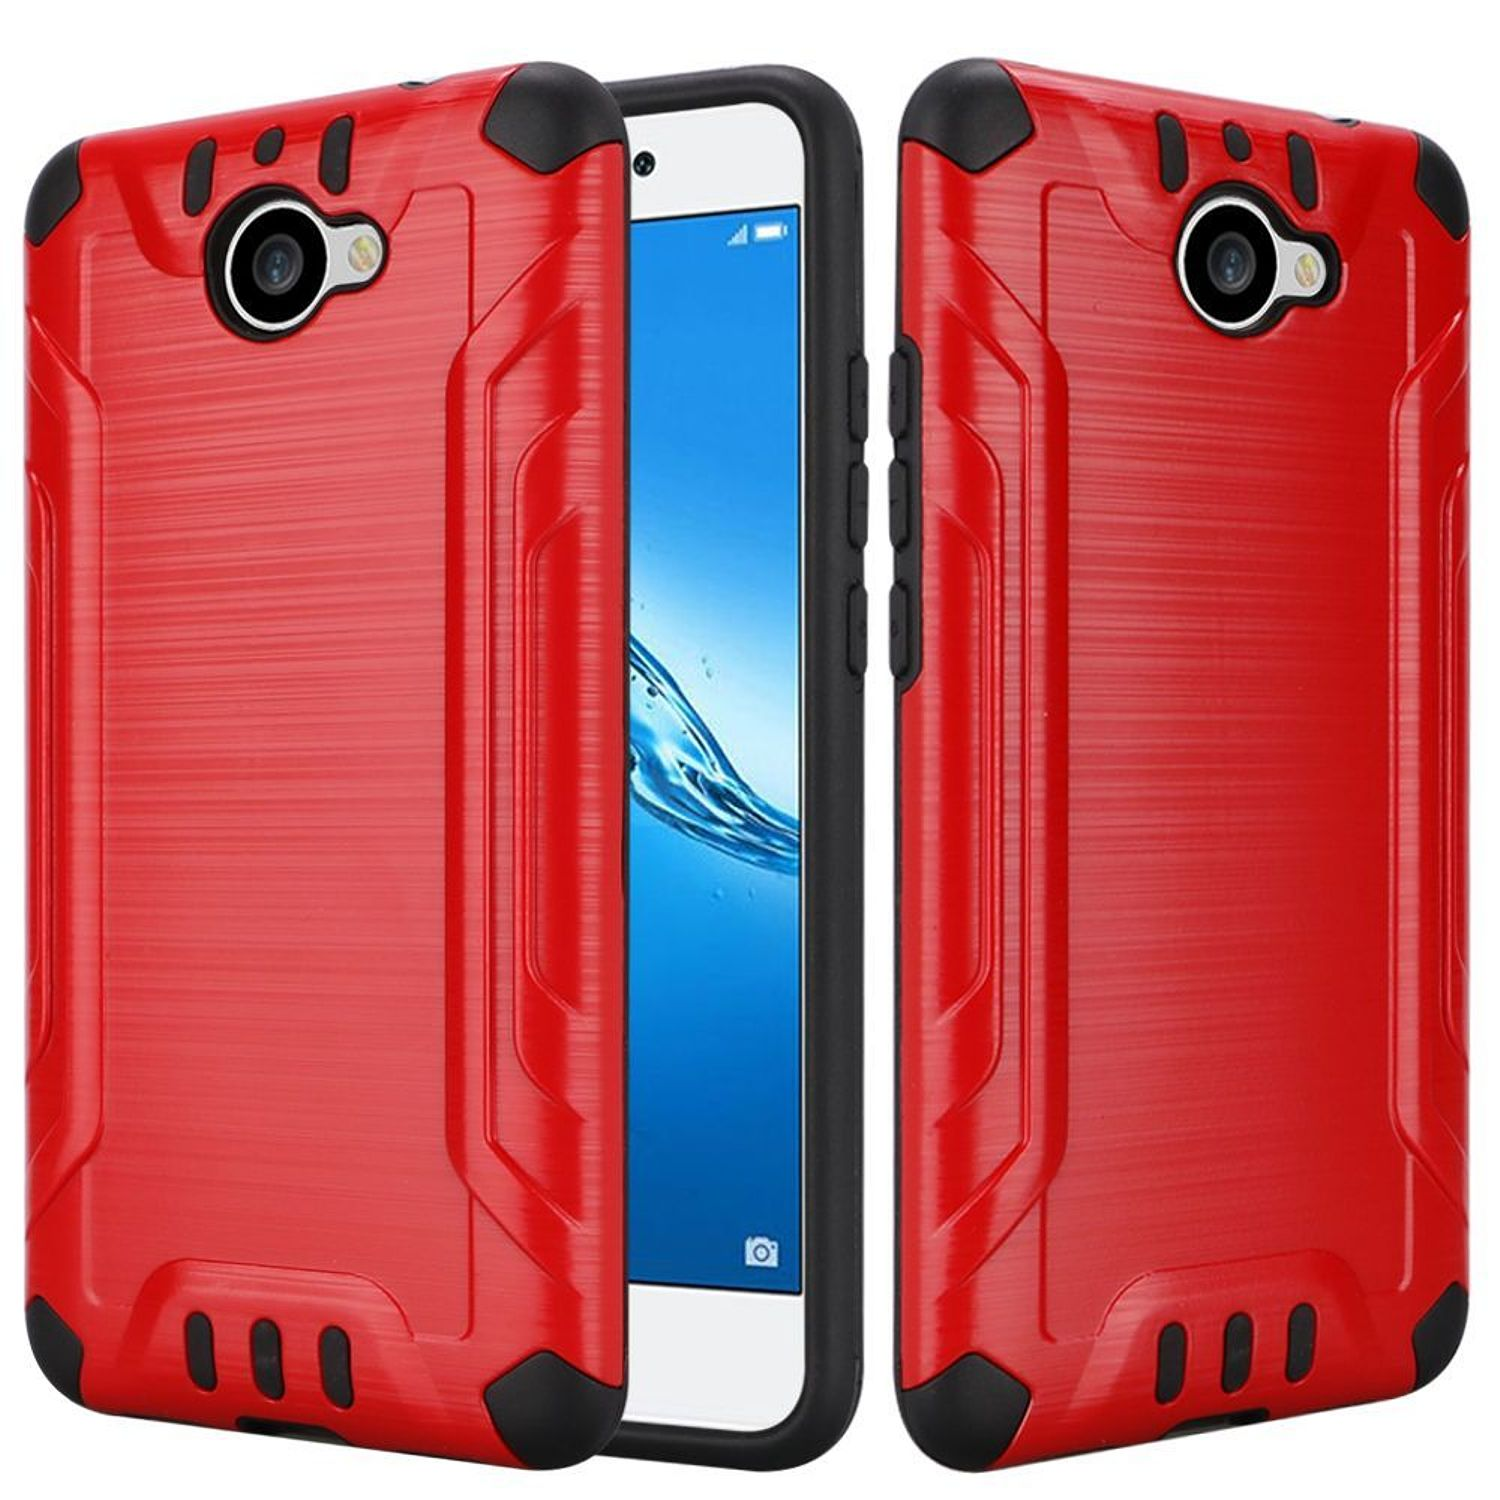 Huawei Ascend XT2 Case, by HR Wireless Slim Armor Dual Layer [Shock Absorbing] Hybrid Brushed Hard Plastic/Soft TPU Rubber Case Cover For Huawei Ascend XT2, Red/Black